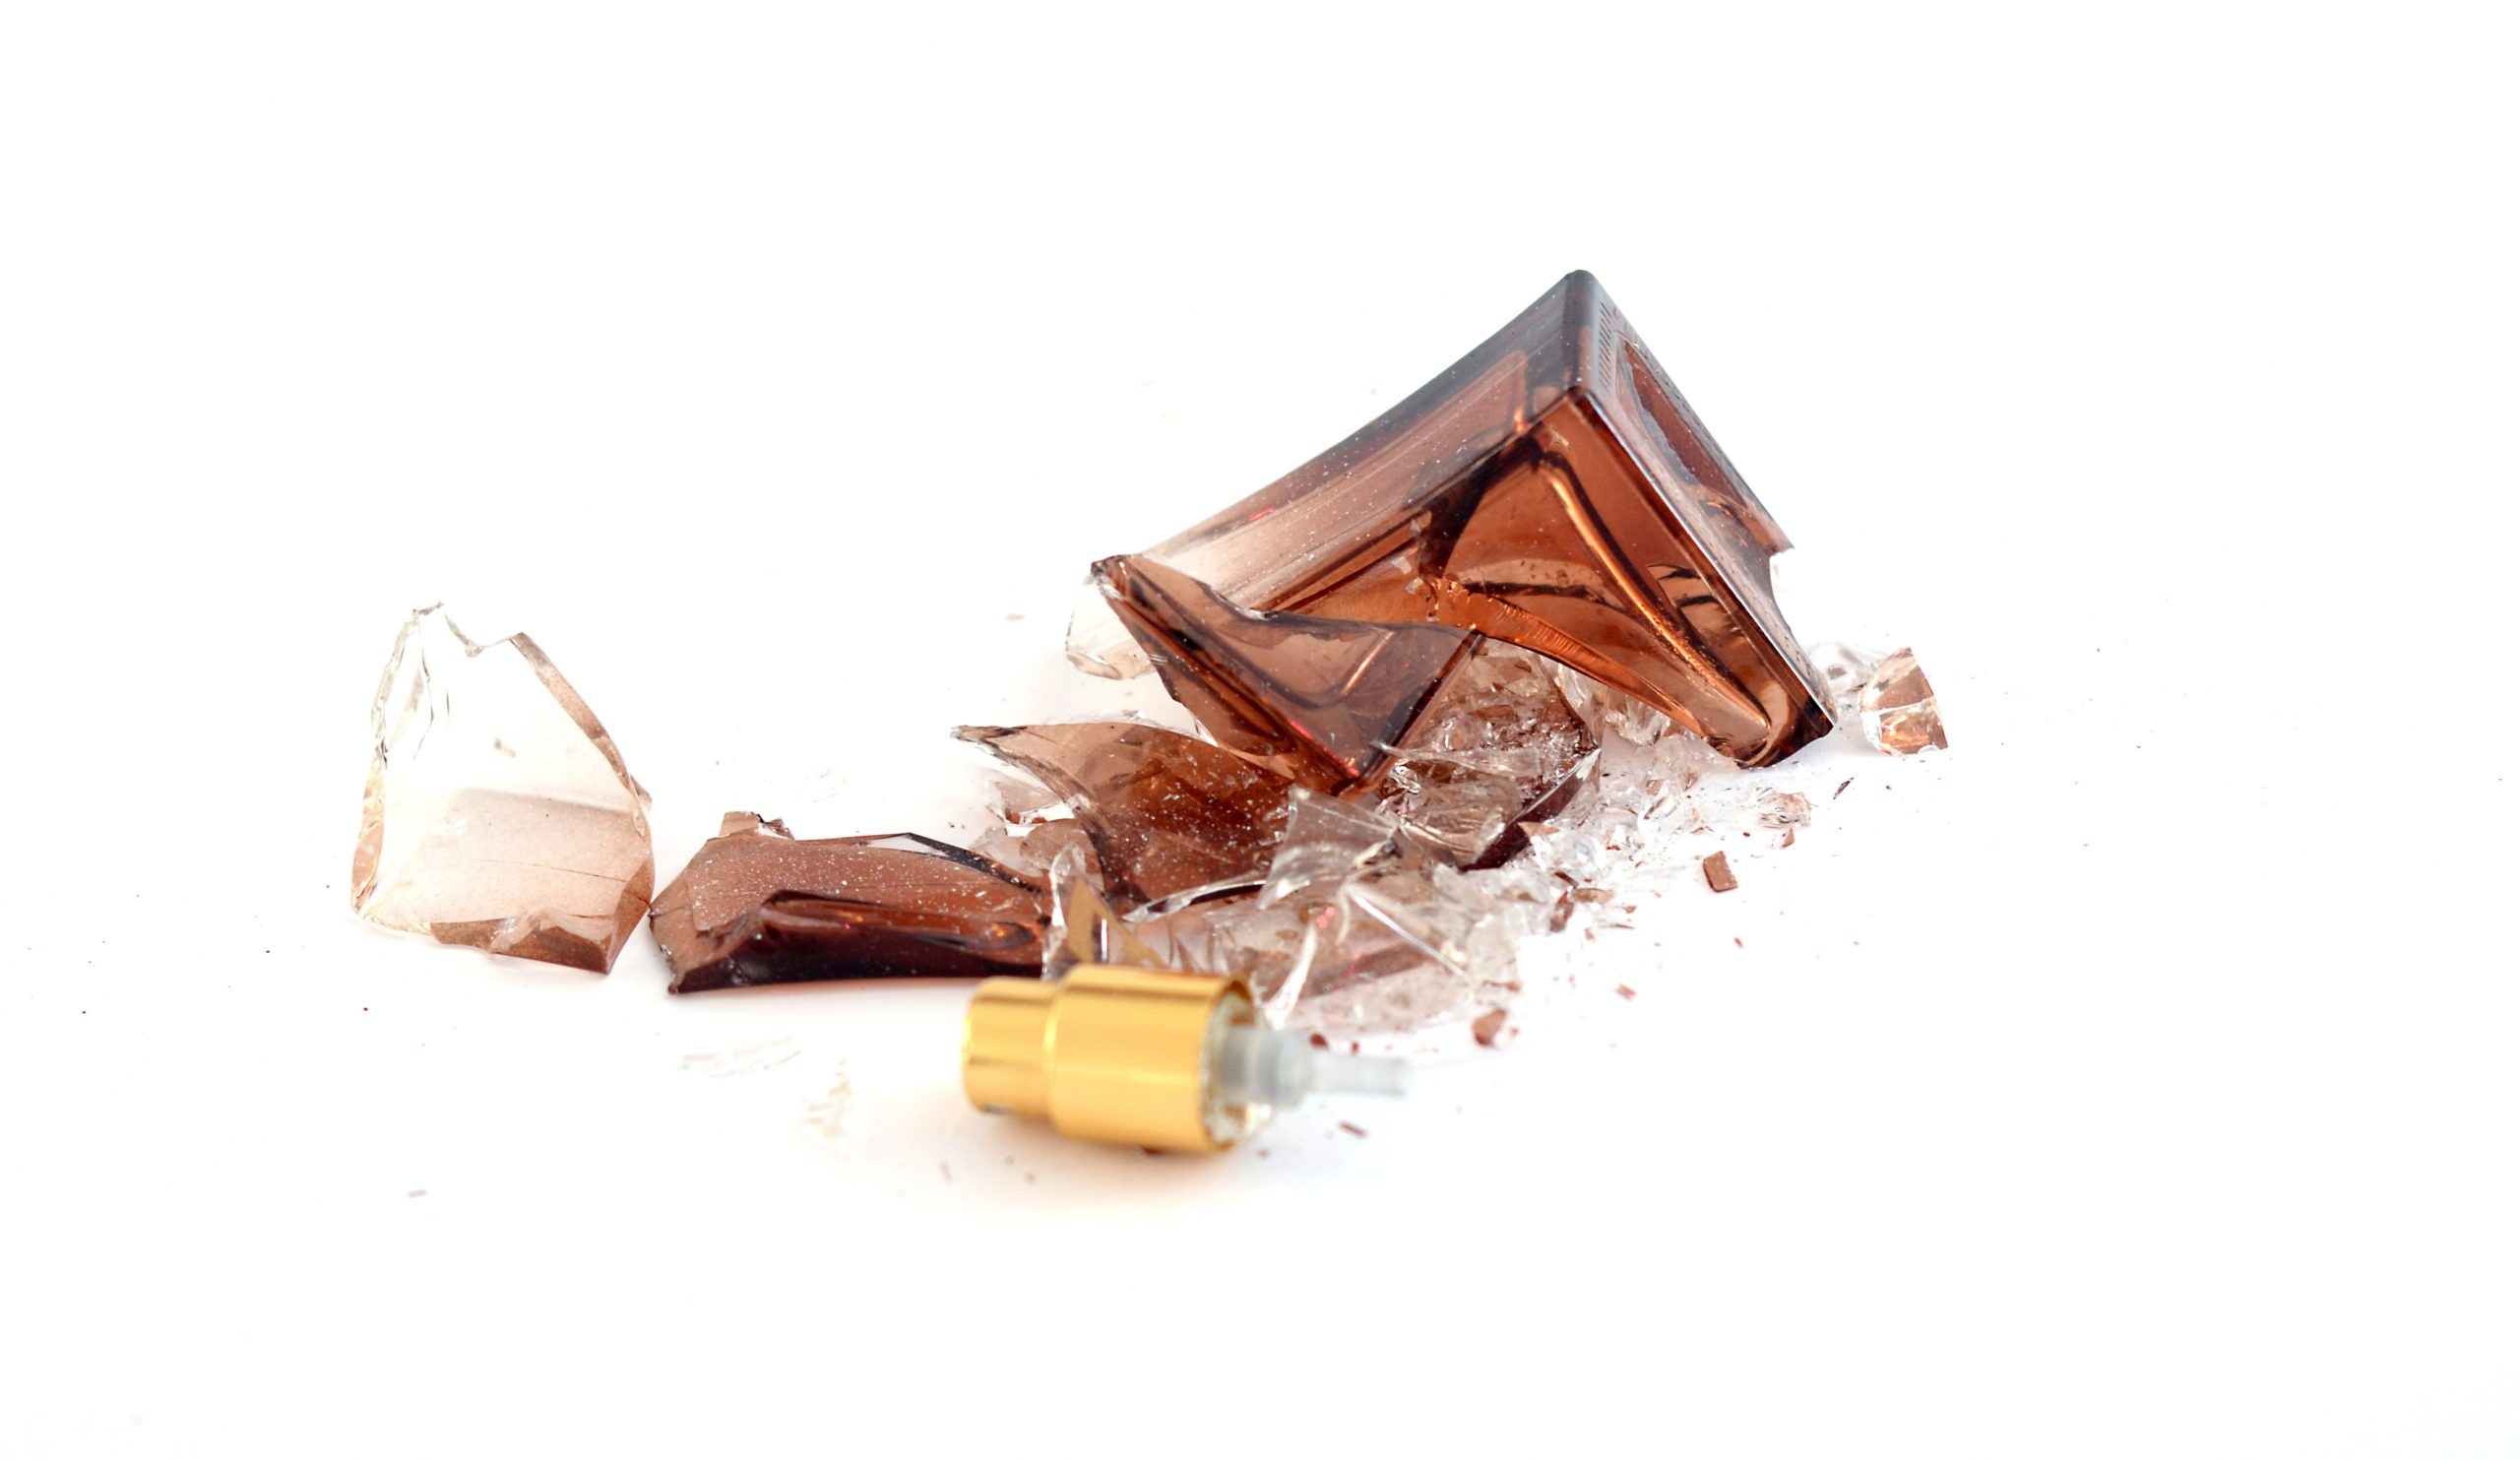 Have You Ever Accidentally Destroyed Something Right After You Bought It?